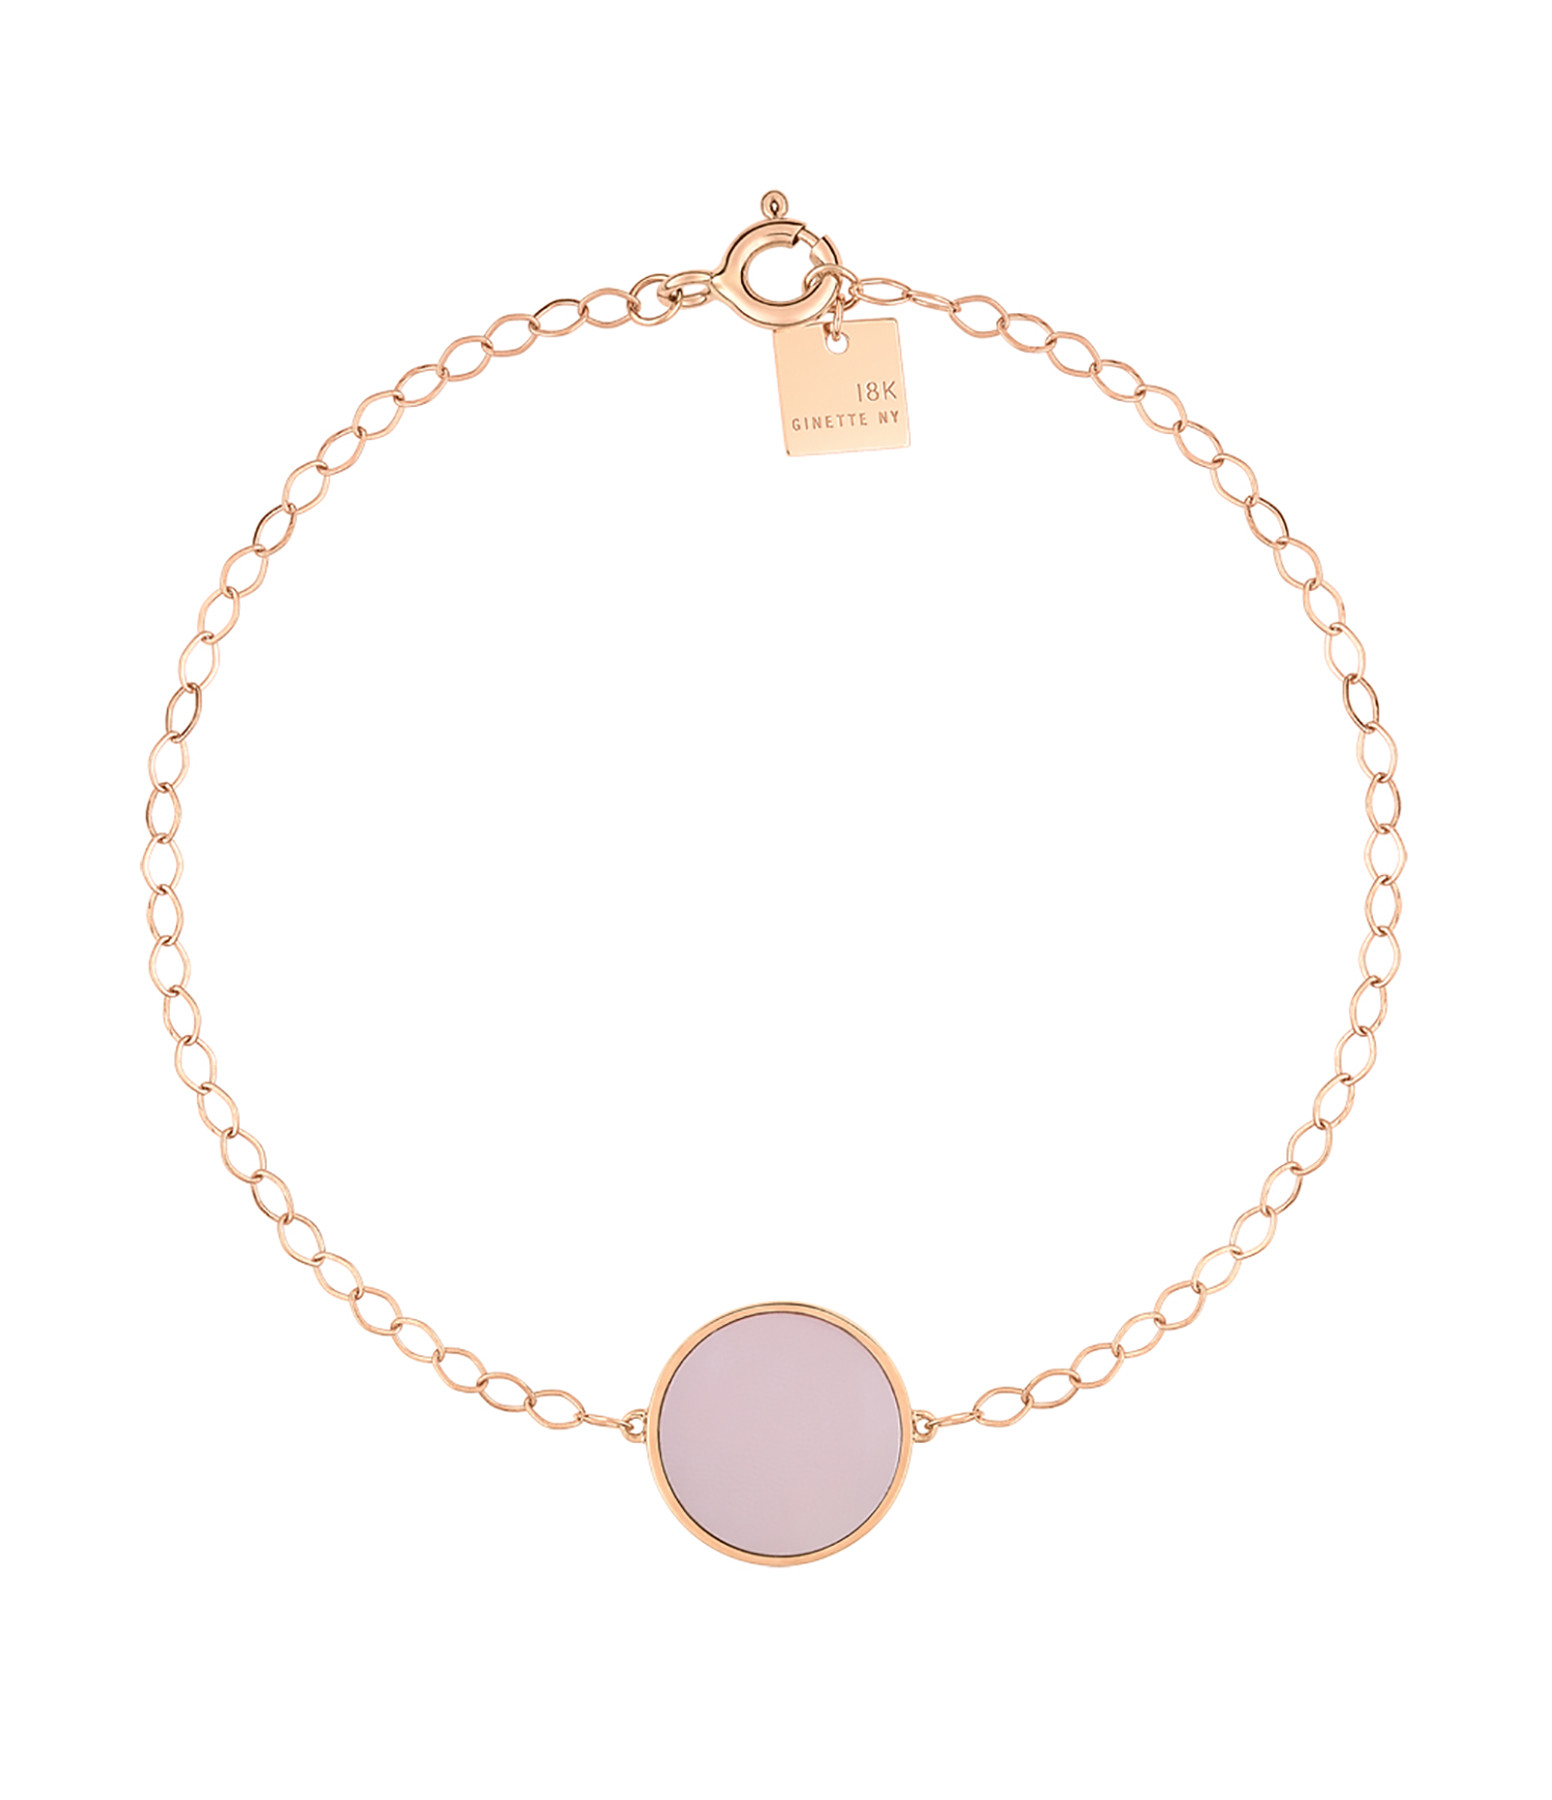 GINETTE NY - Bracelet Ever Disc Or Rose Nacre Rose